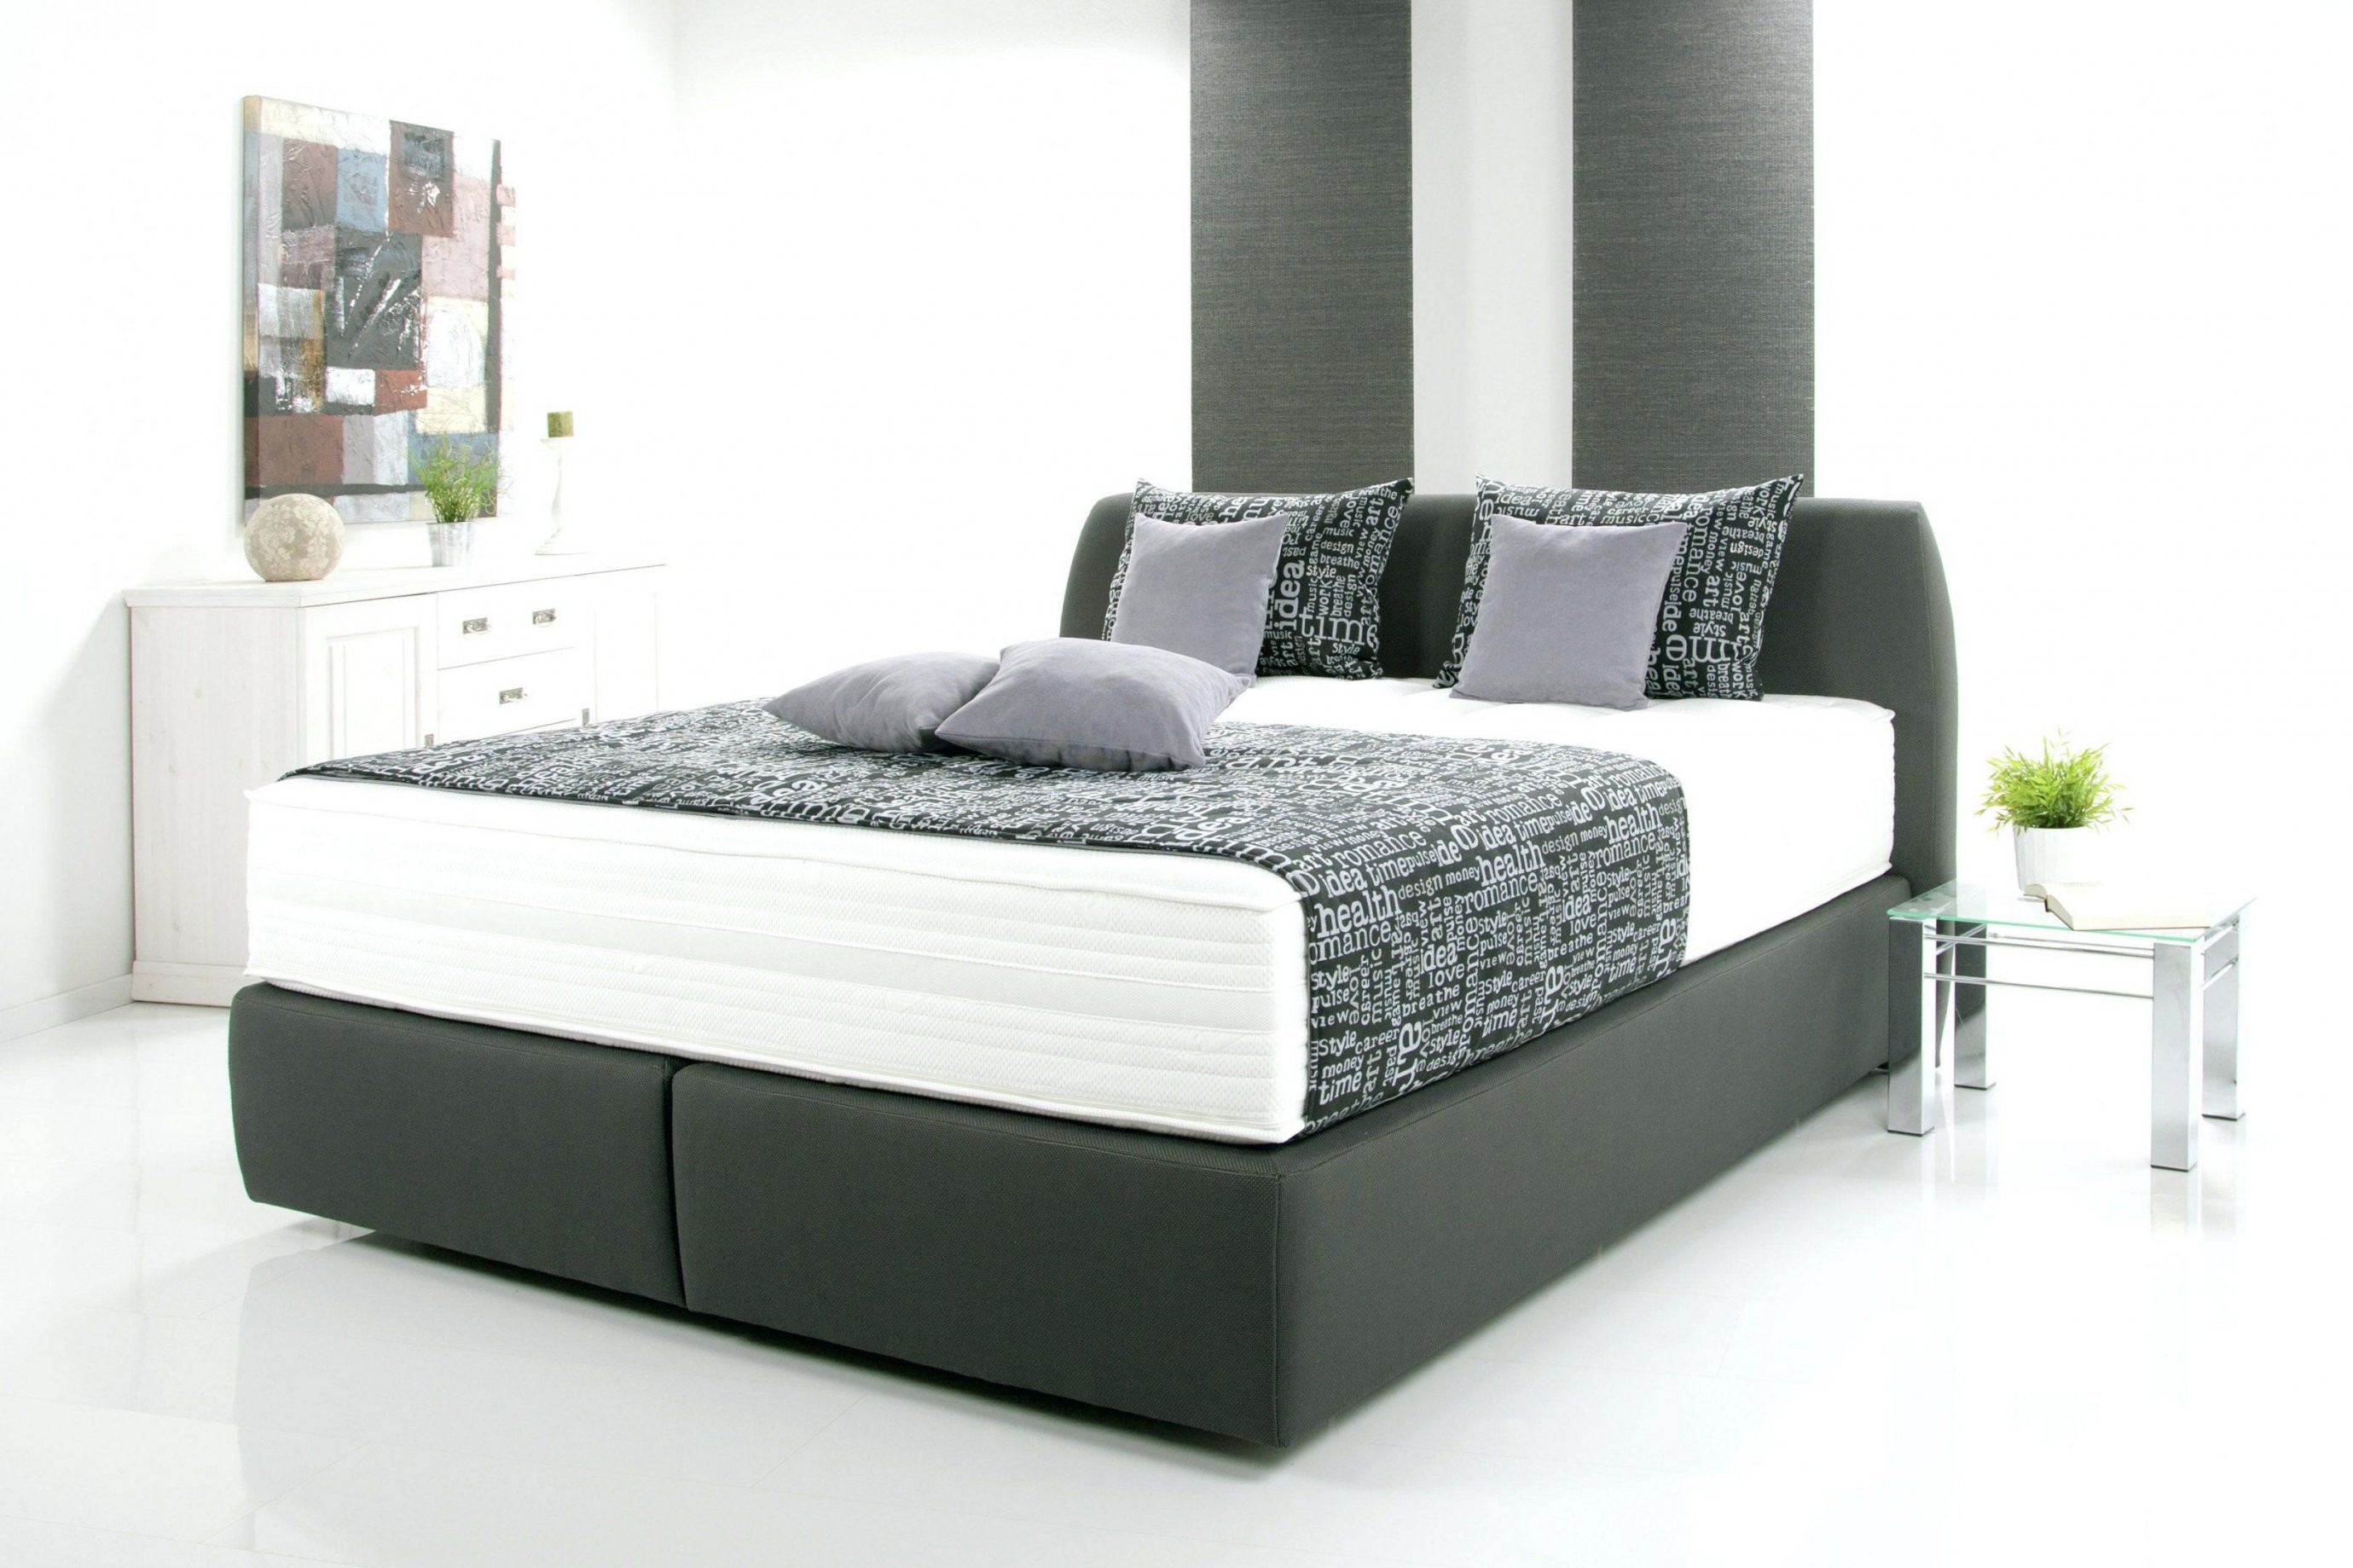 boxspringbett 140x200 preisvergleich cool boxspringbett kaufen von boxspringbett 140x200. Black Bedroom Furniture Sets. Home Design Ideas